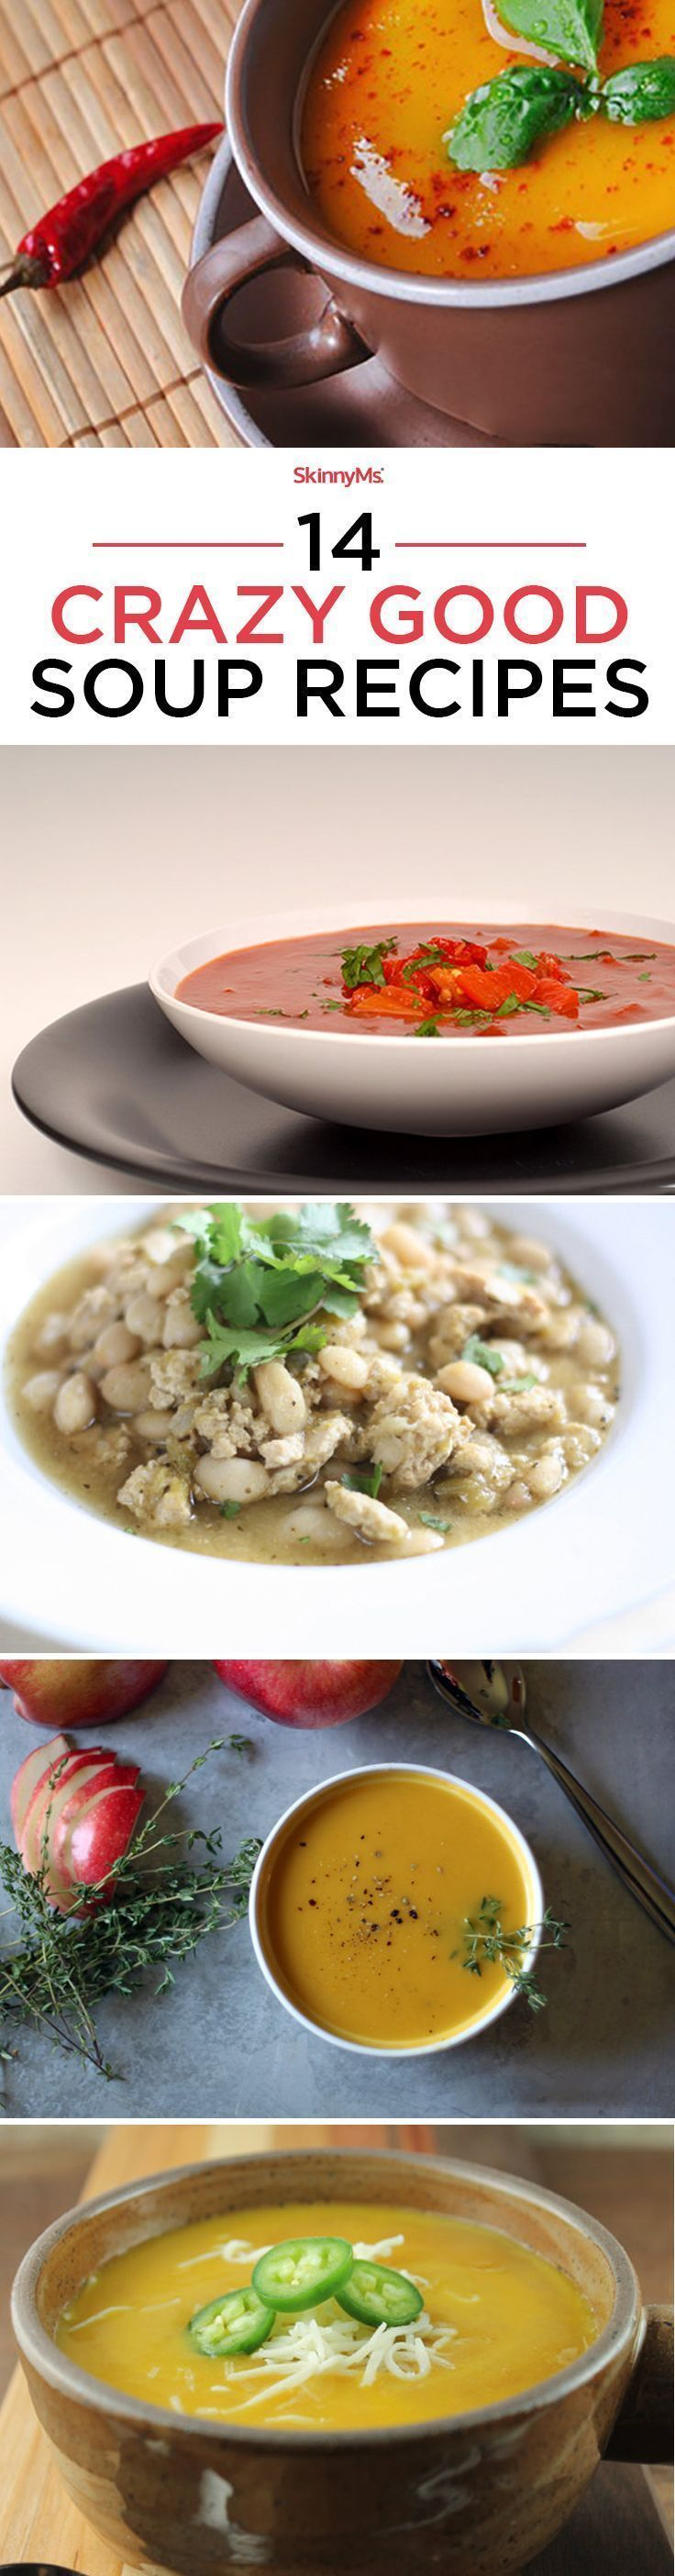 Try these 14 Crazy Good Soup Recipes! Just in time for Fall. #skinnyms #fall #soup